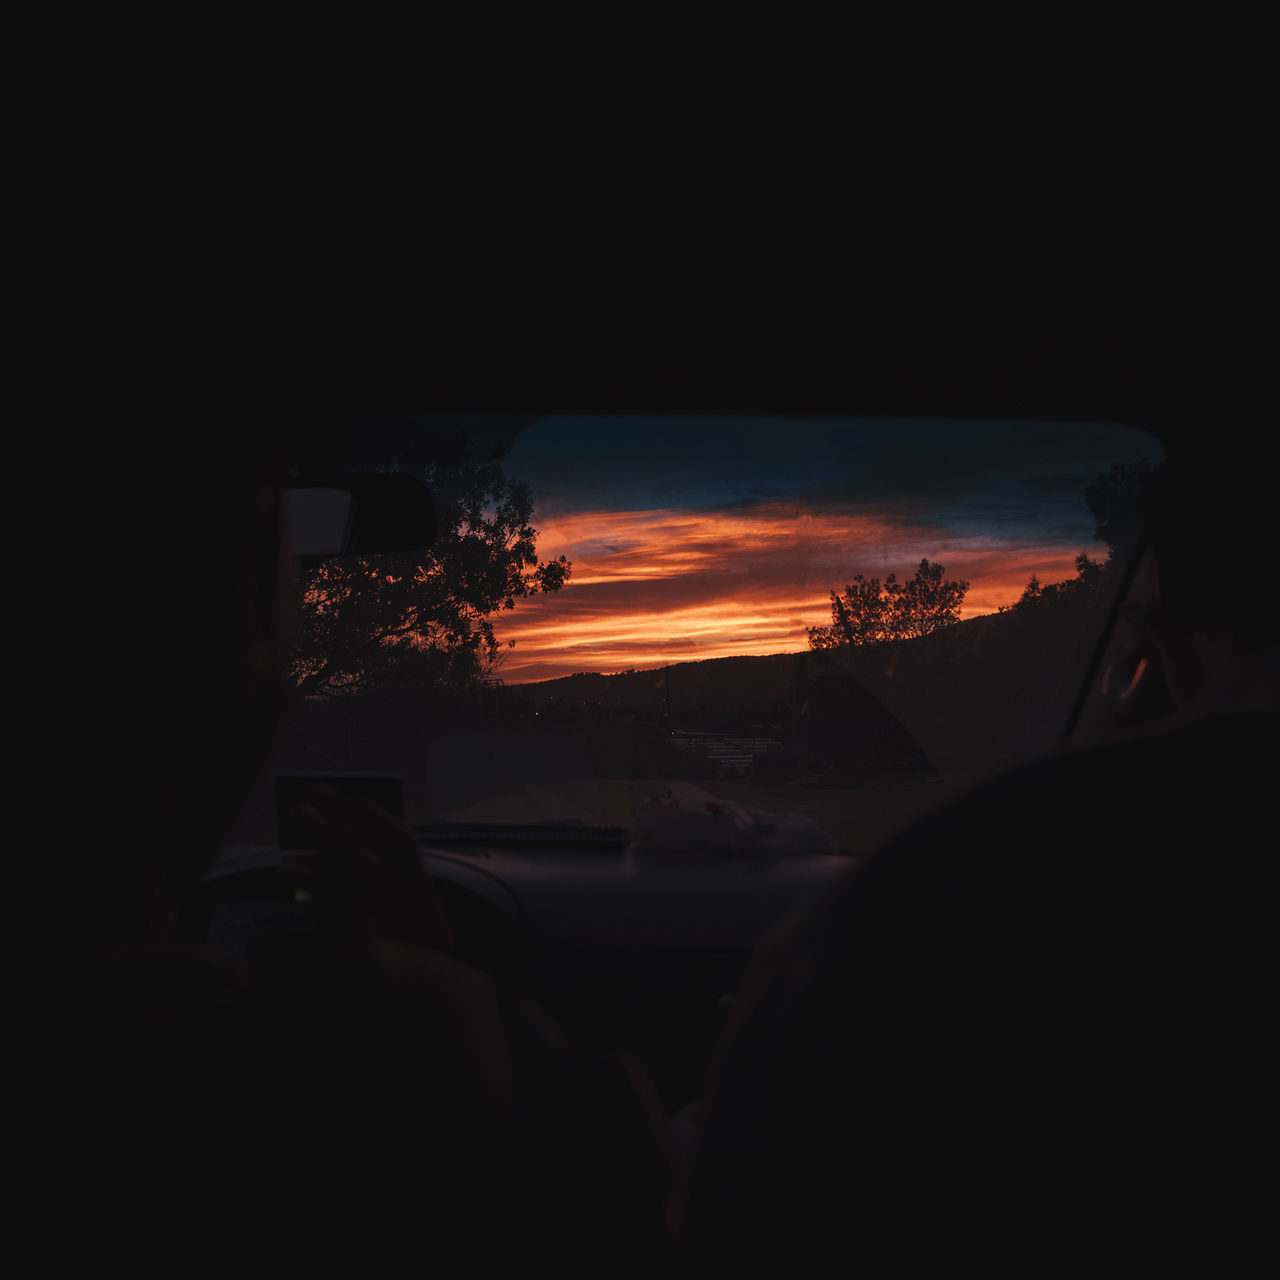 motor vehicle, car, mode of transportation, land vehicle, sky, transportation, sunset, vehicle interior, nature, car interior, no people, orange color, indoors, silhouette, night, copy space, beauty in nature, burning, dark, road trip